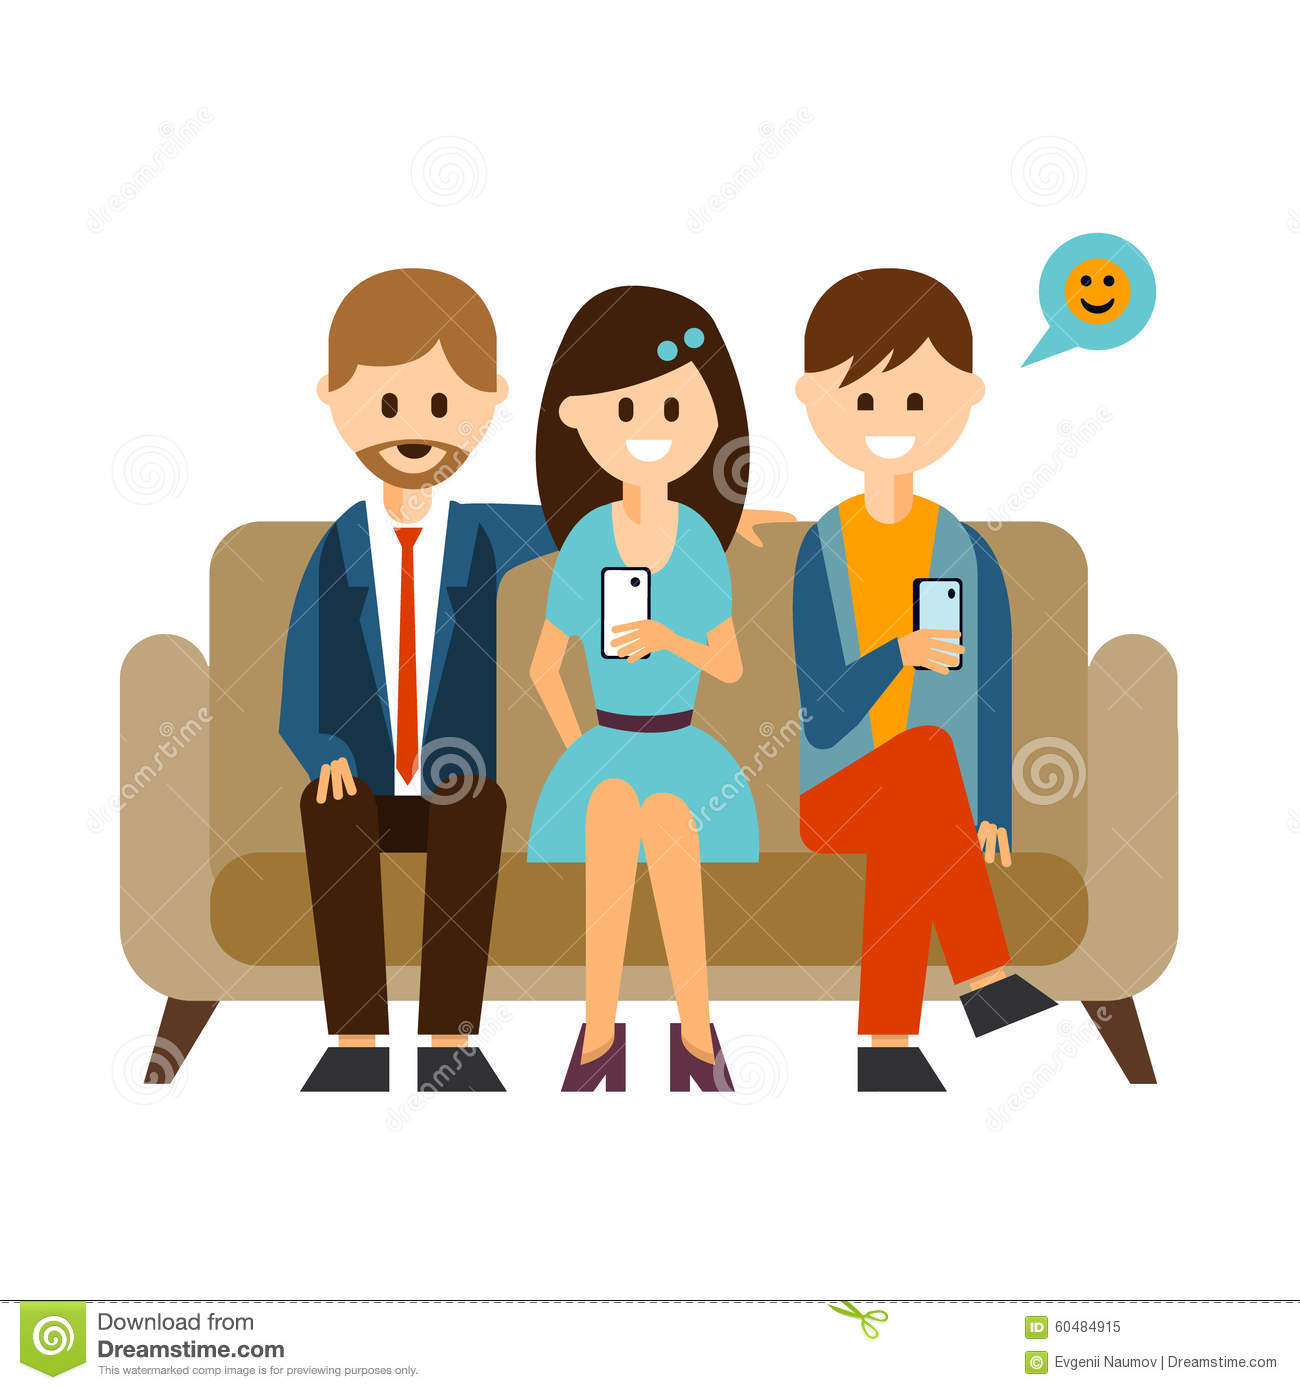 Social media cell phone photo clipart png transparent library Young People Communicating In Social Media Vector Stock Vector ... png transparent library